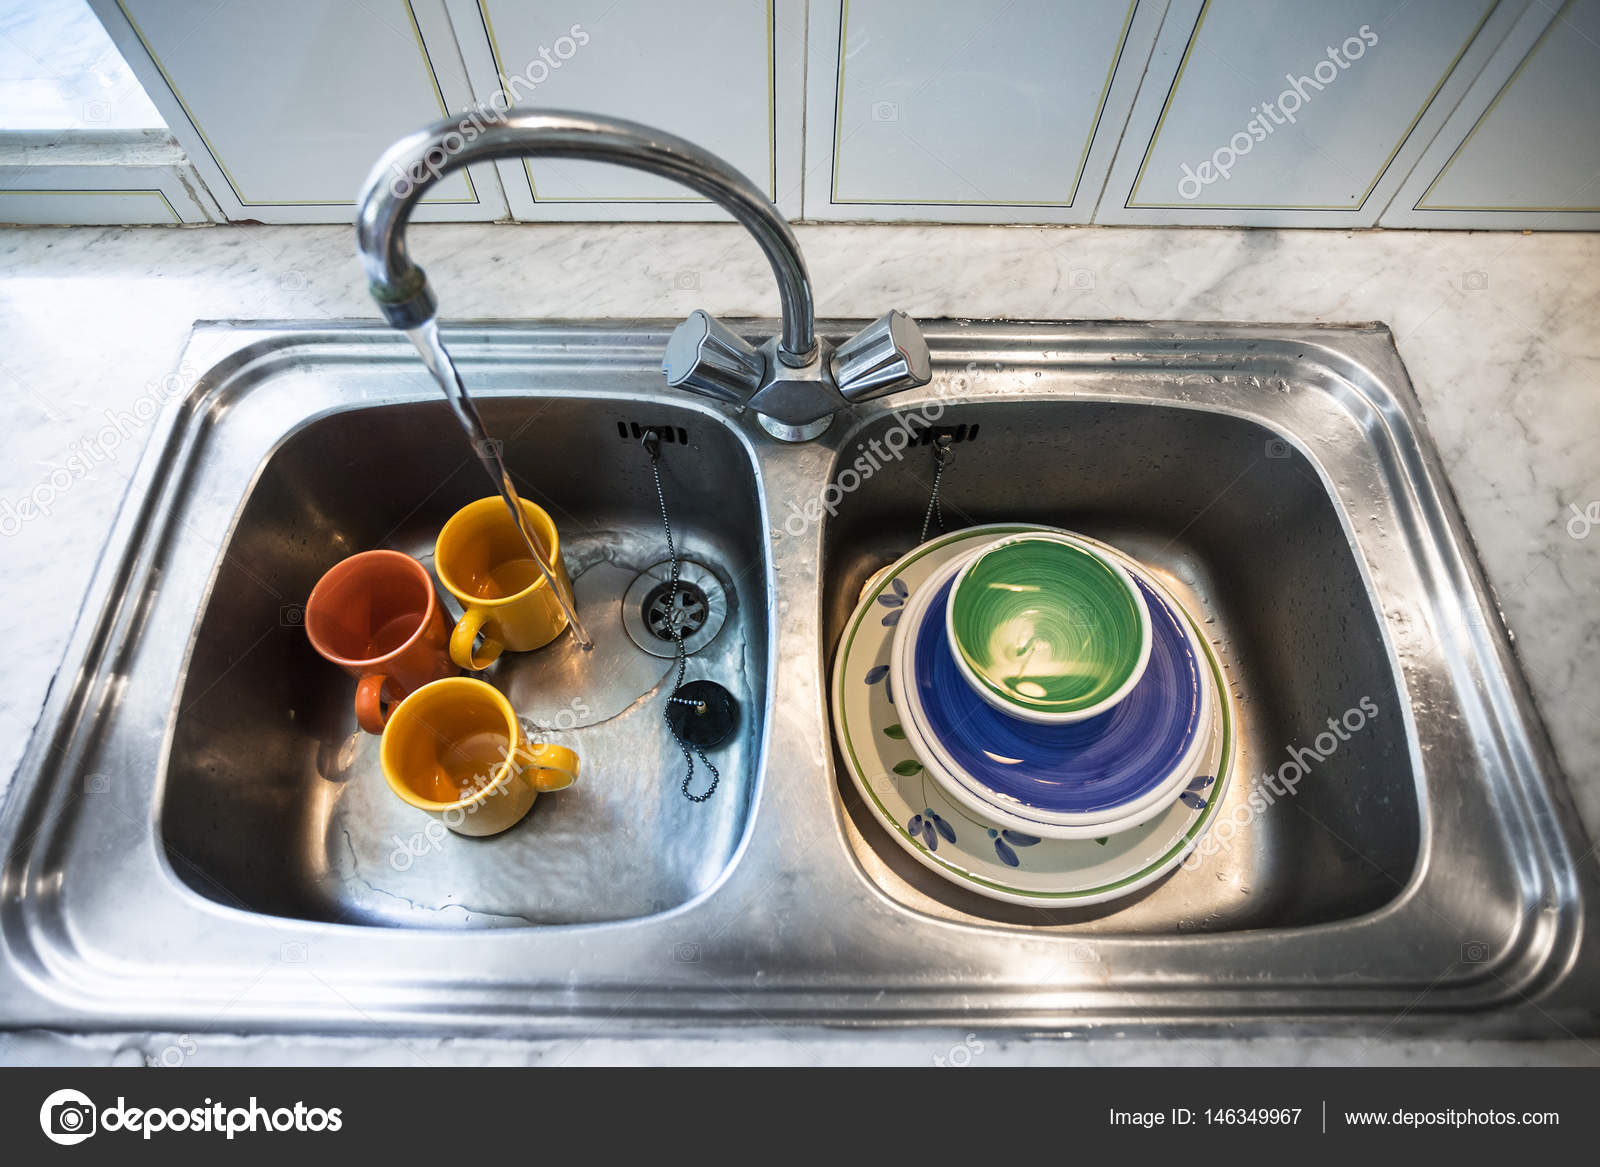 Dirty dishes in kitchen sink — Stock Photo © vvoennyy #146349967